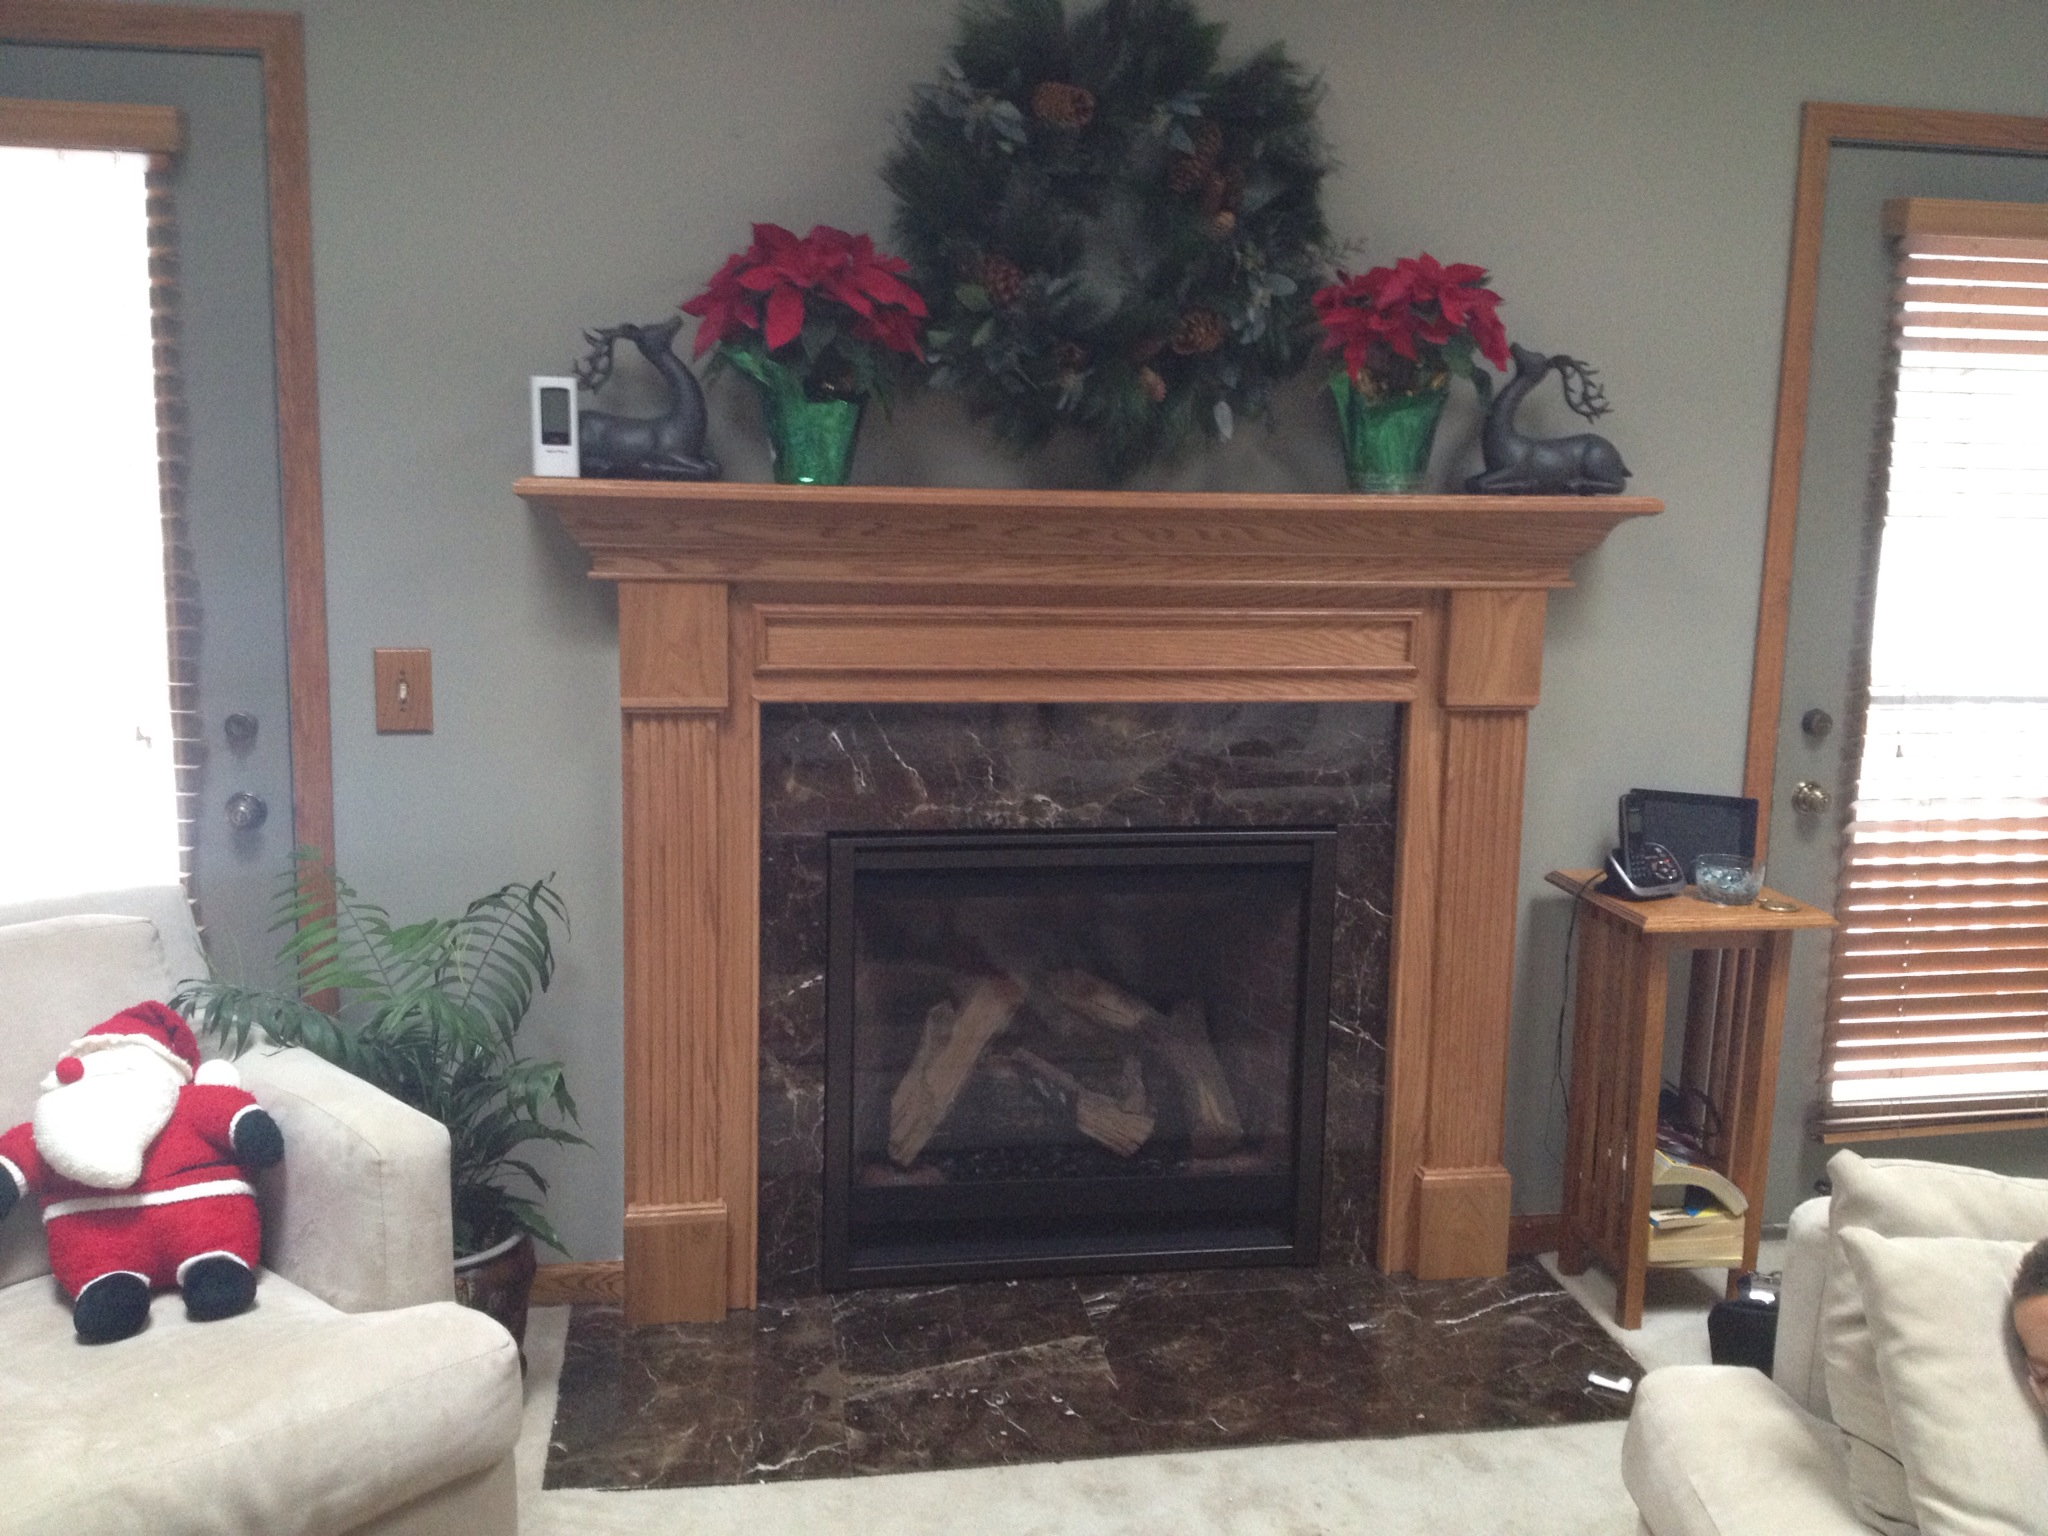 6000CLX w/ Marble and Mantel